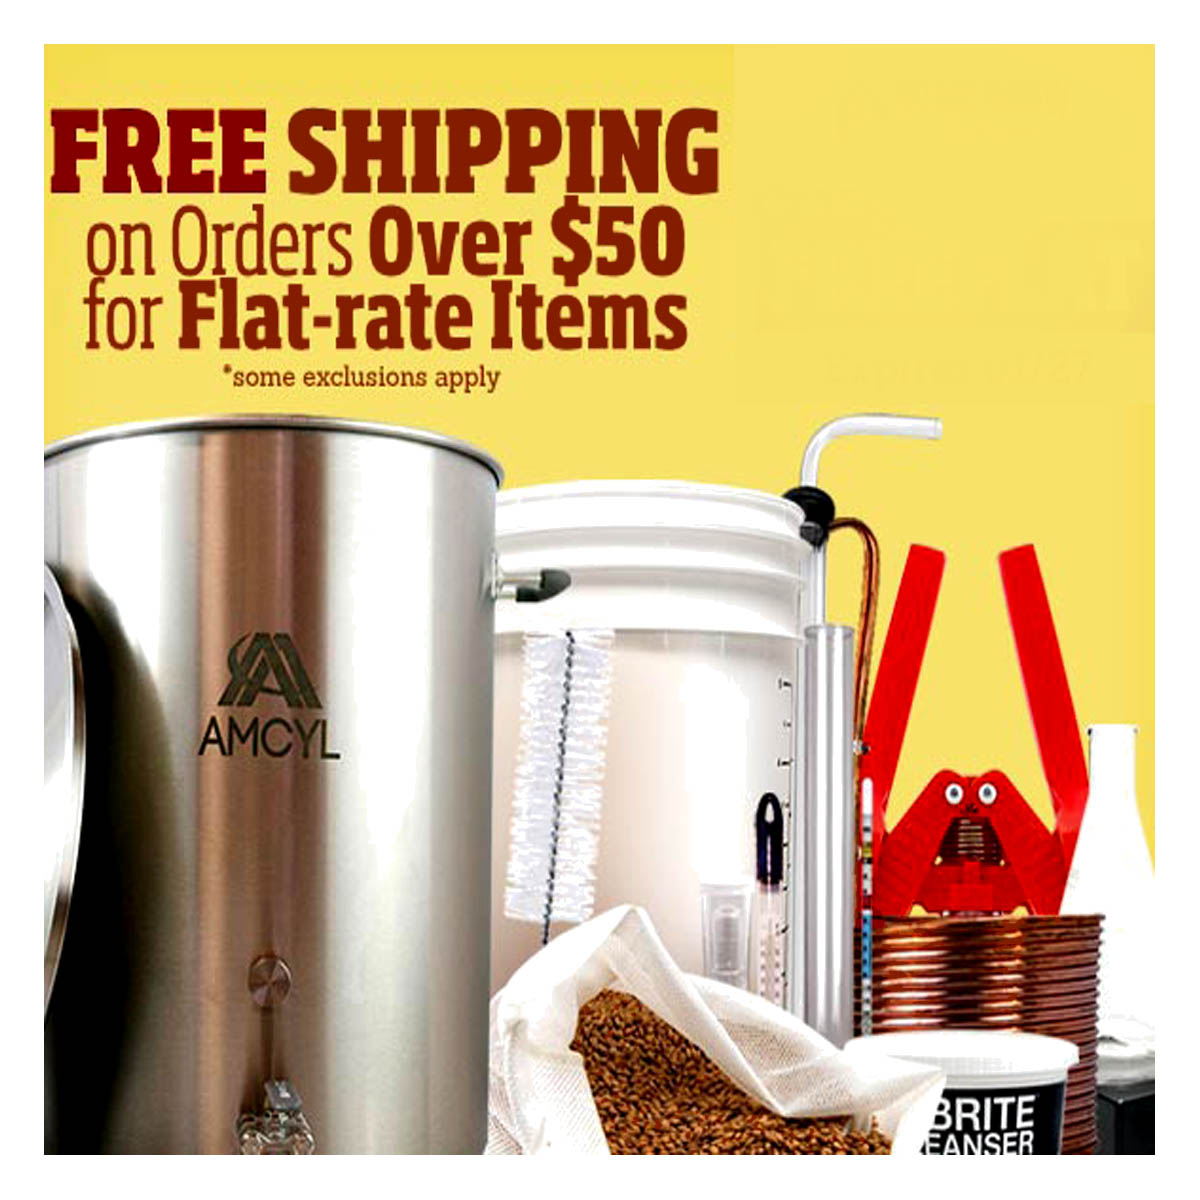 Coupon Code For Free Shipping Promo Code for HomebrewSupply.com Coupon Code